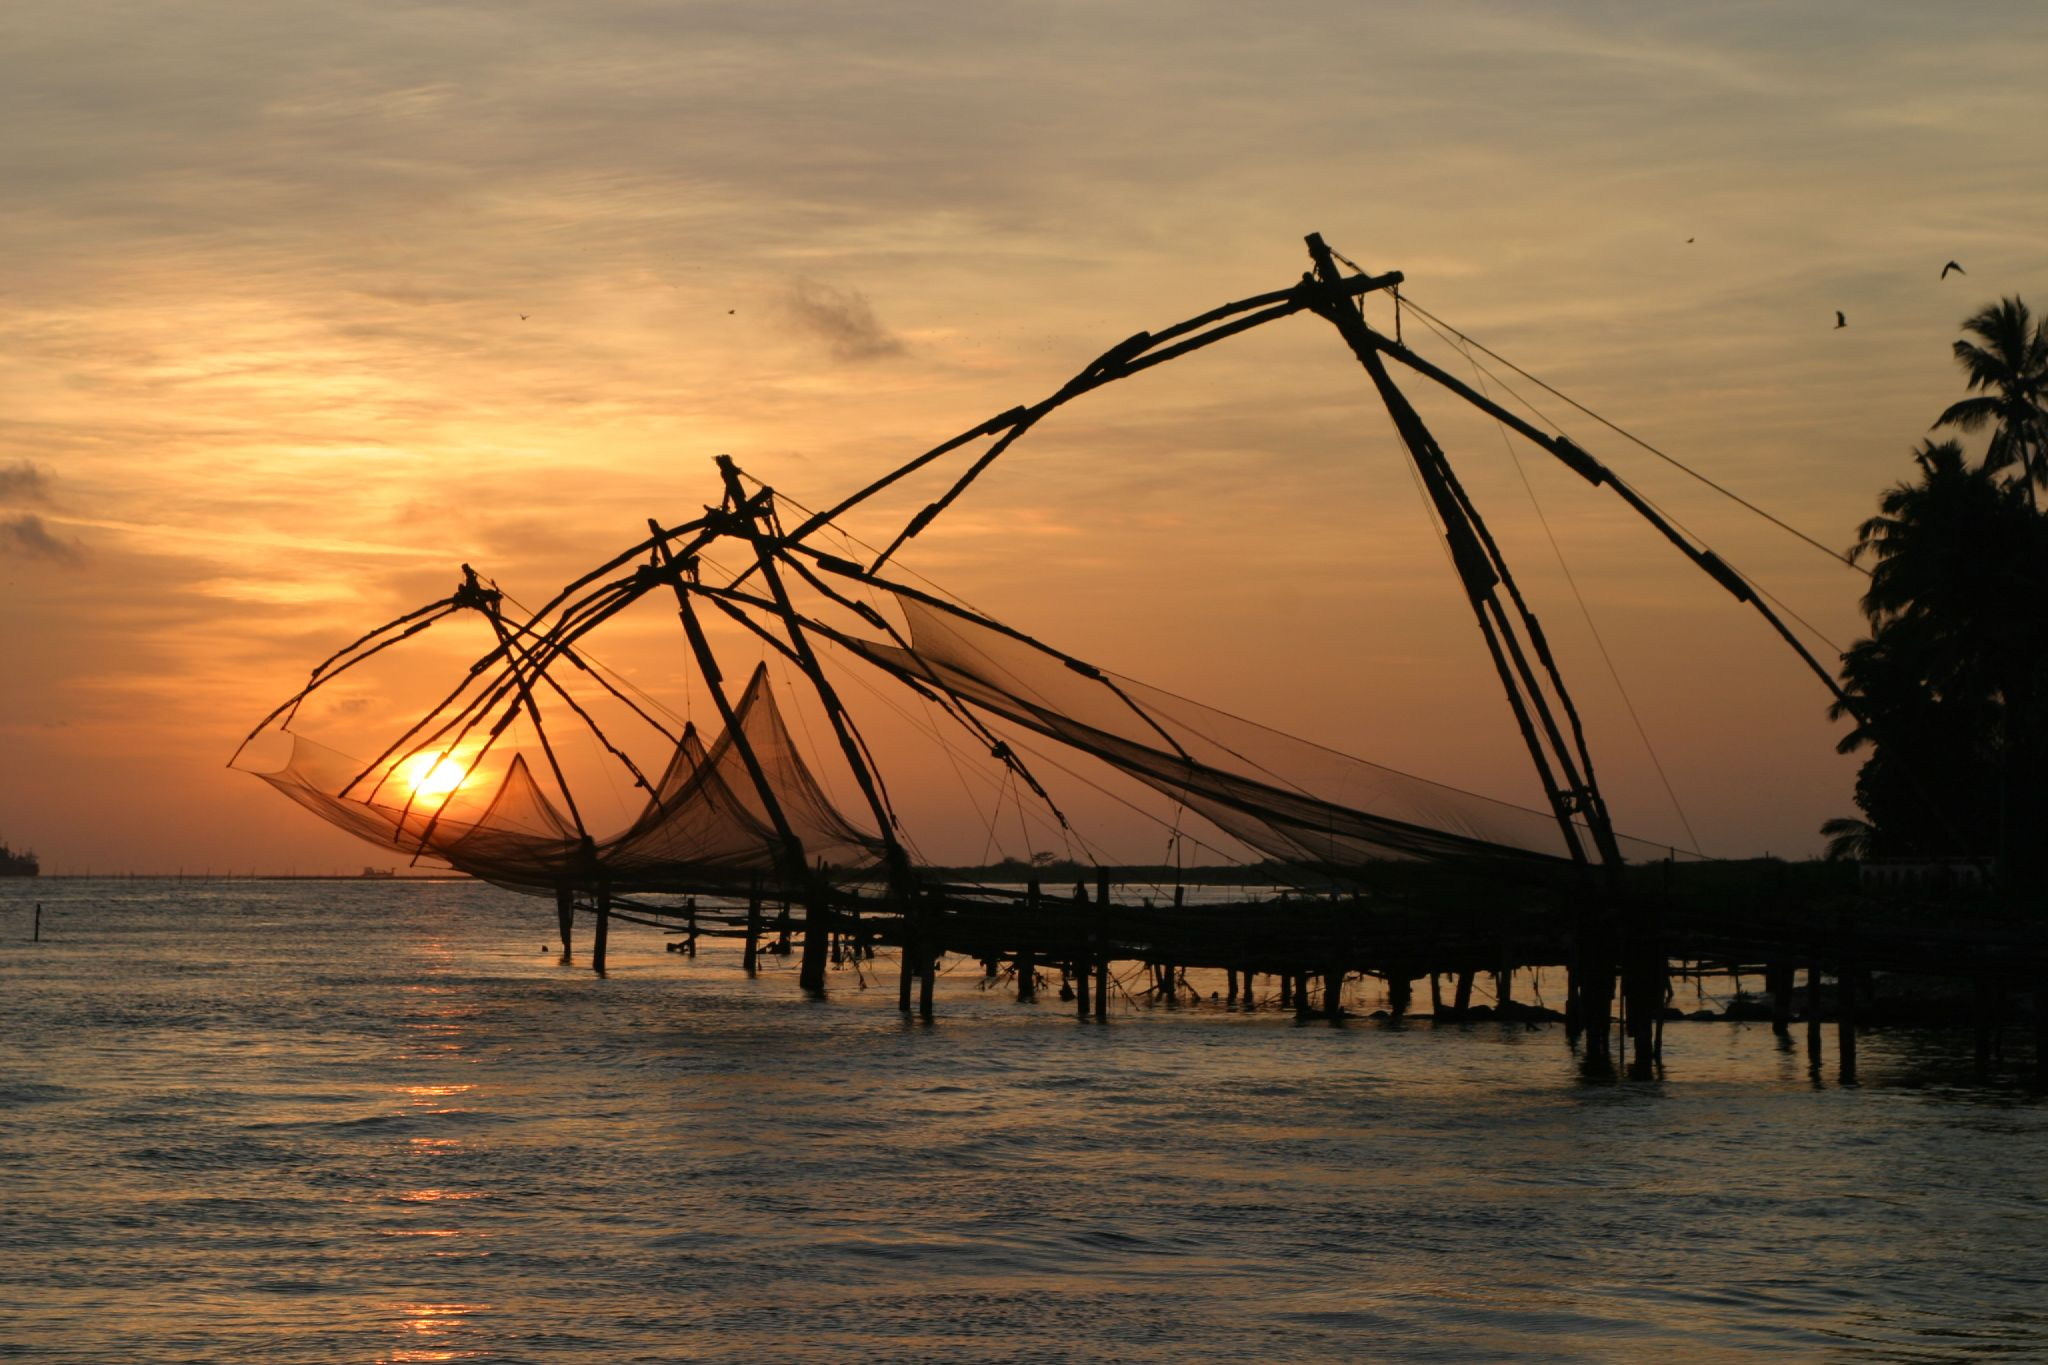 Fishing nets in South India*